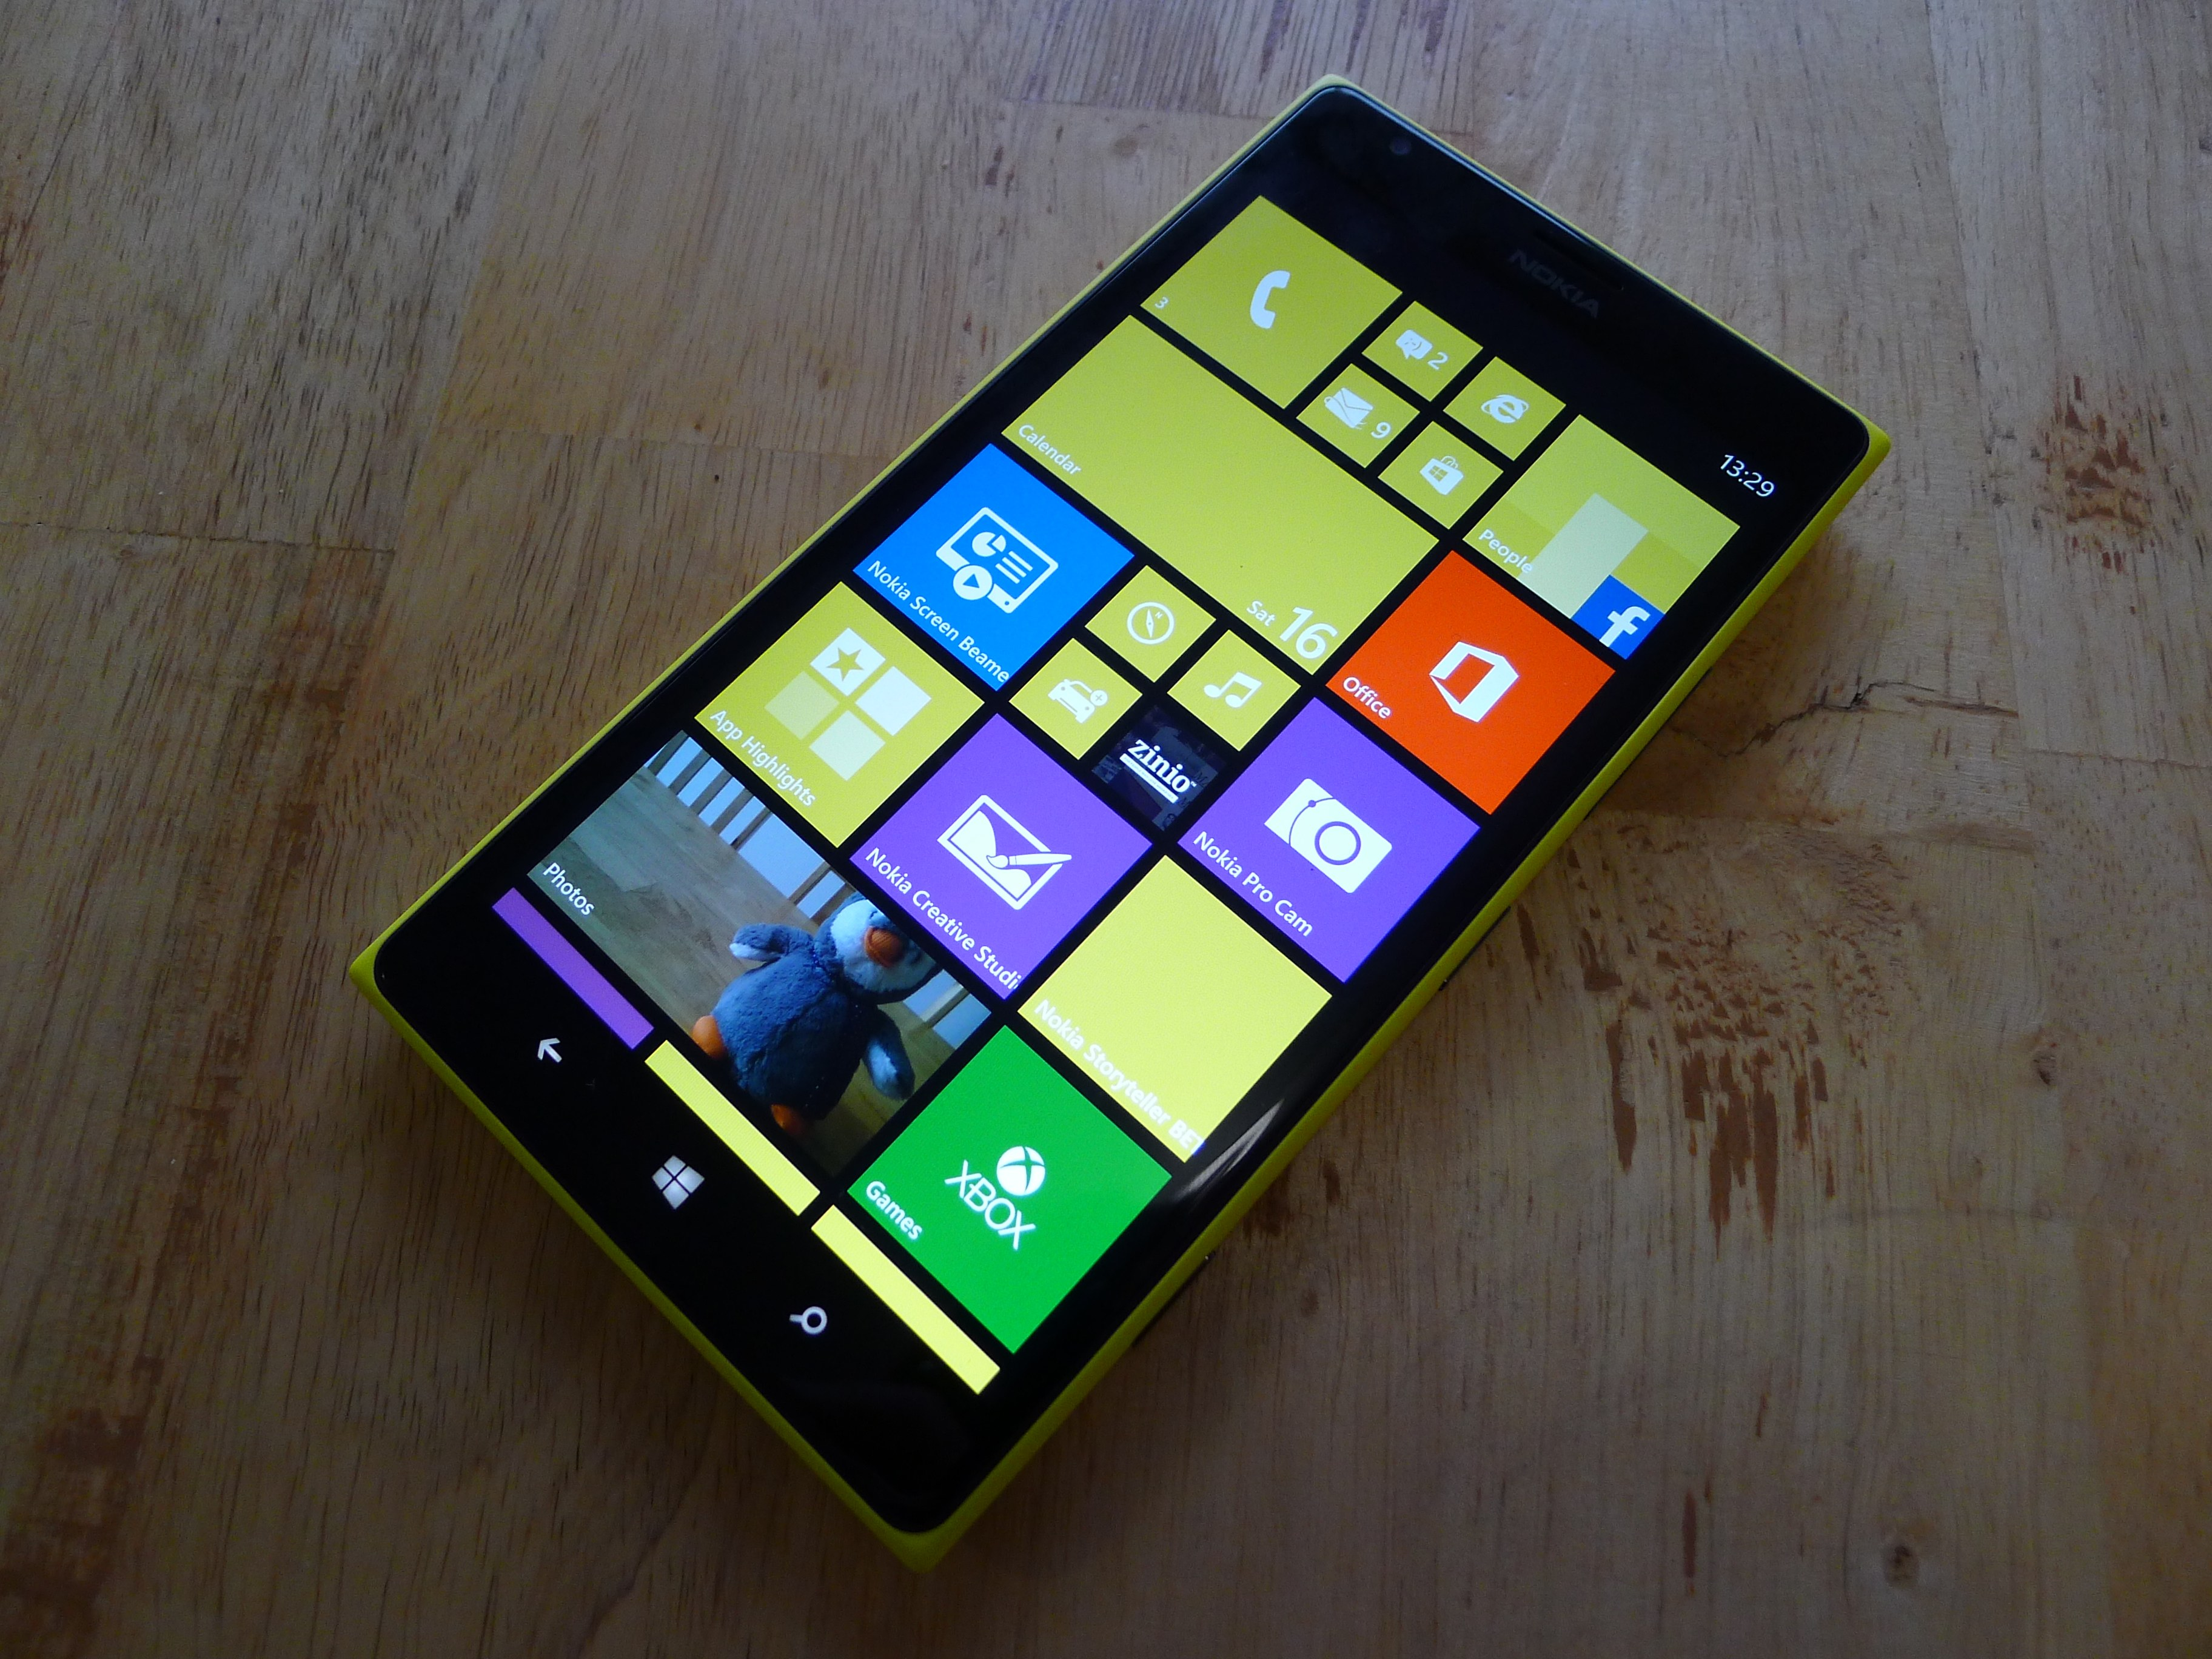 Nokia windows 8 smartphones | letsgodigital.